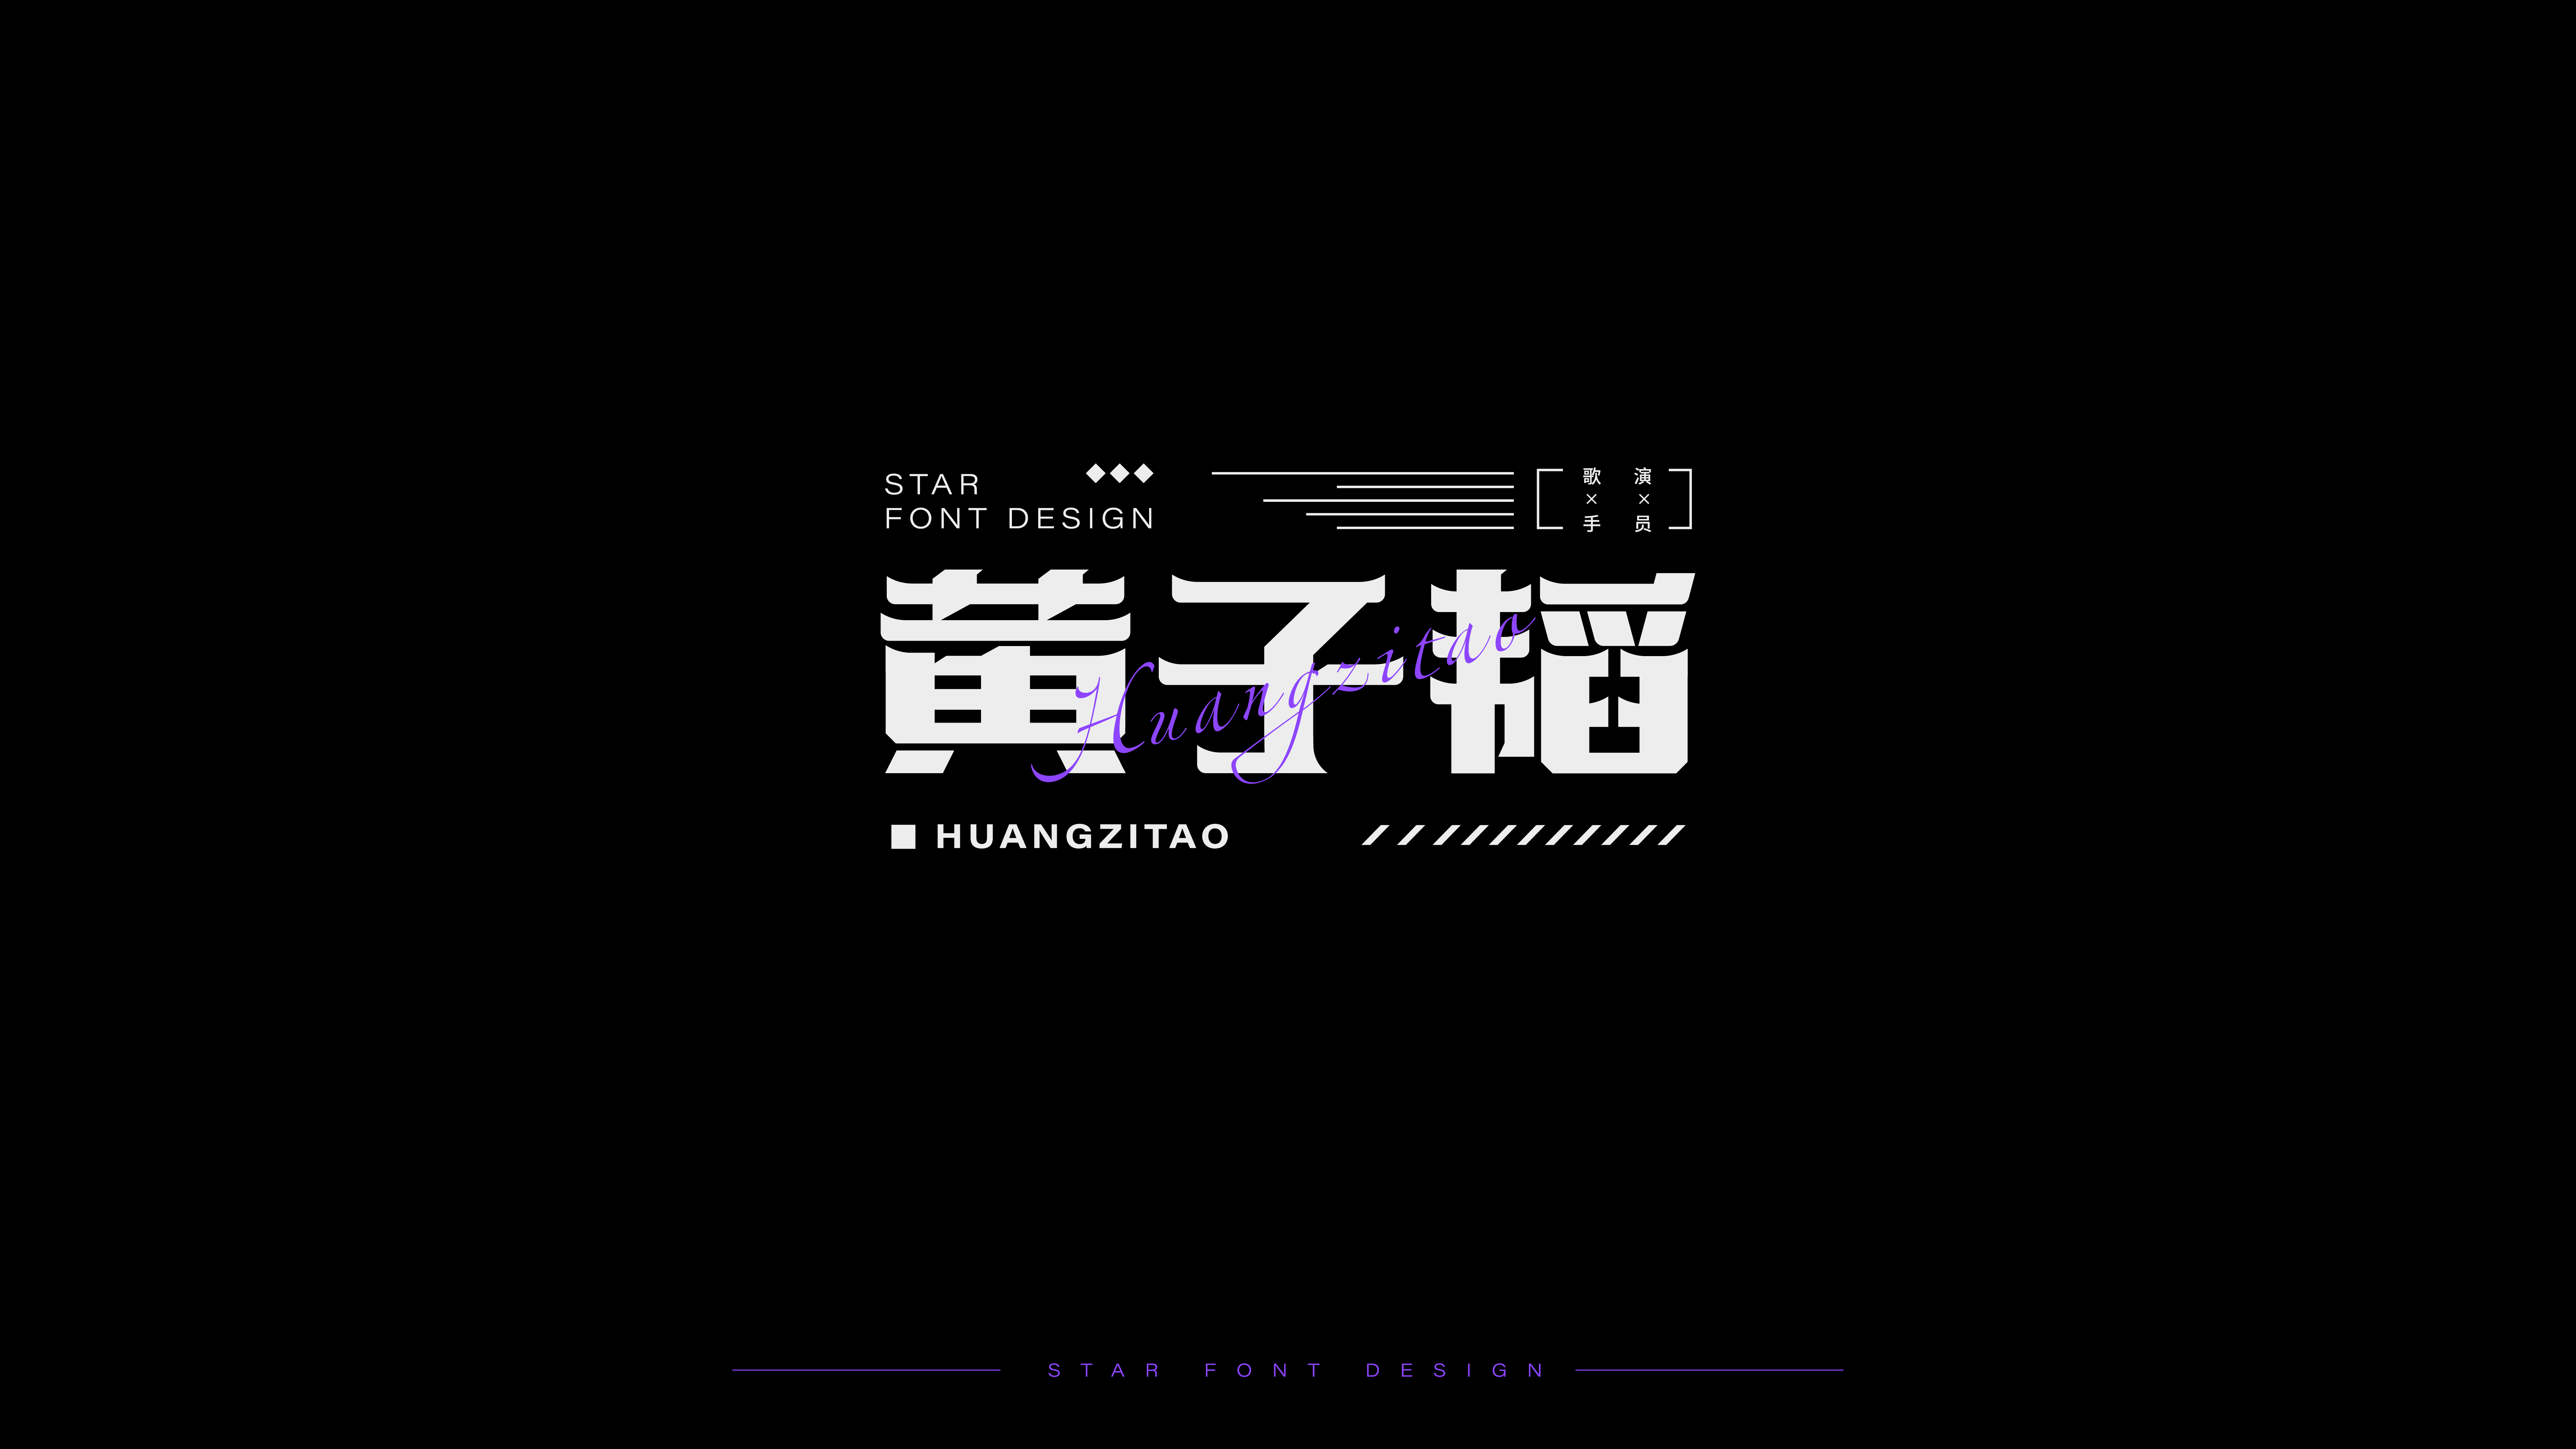 41P Collection of the latest Chinese font design schemes in 2021 #.140